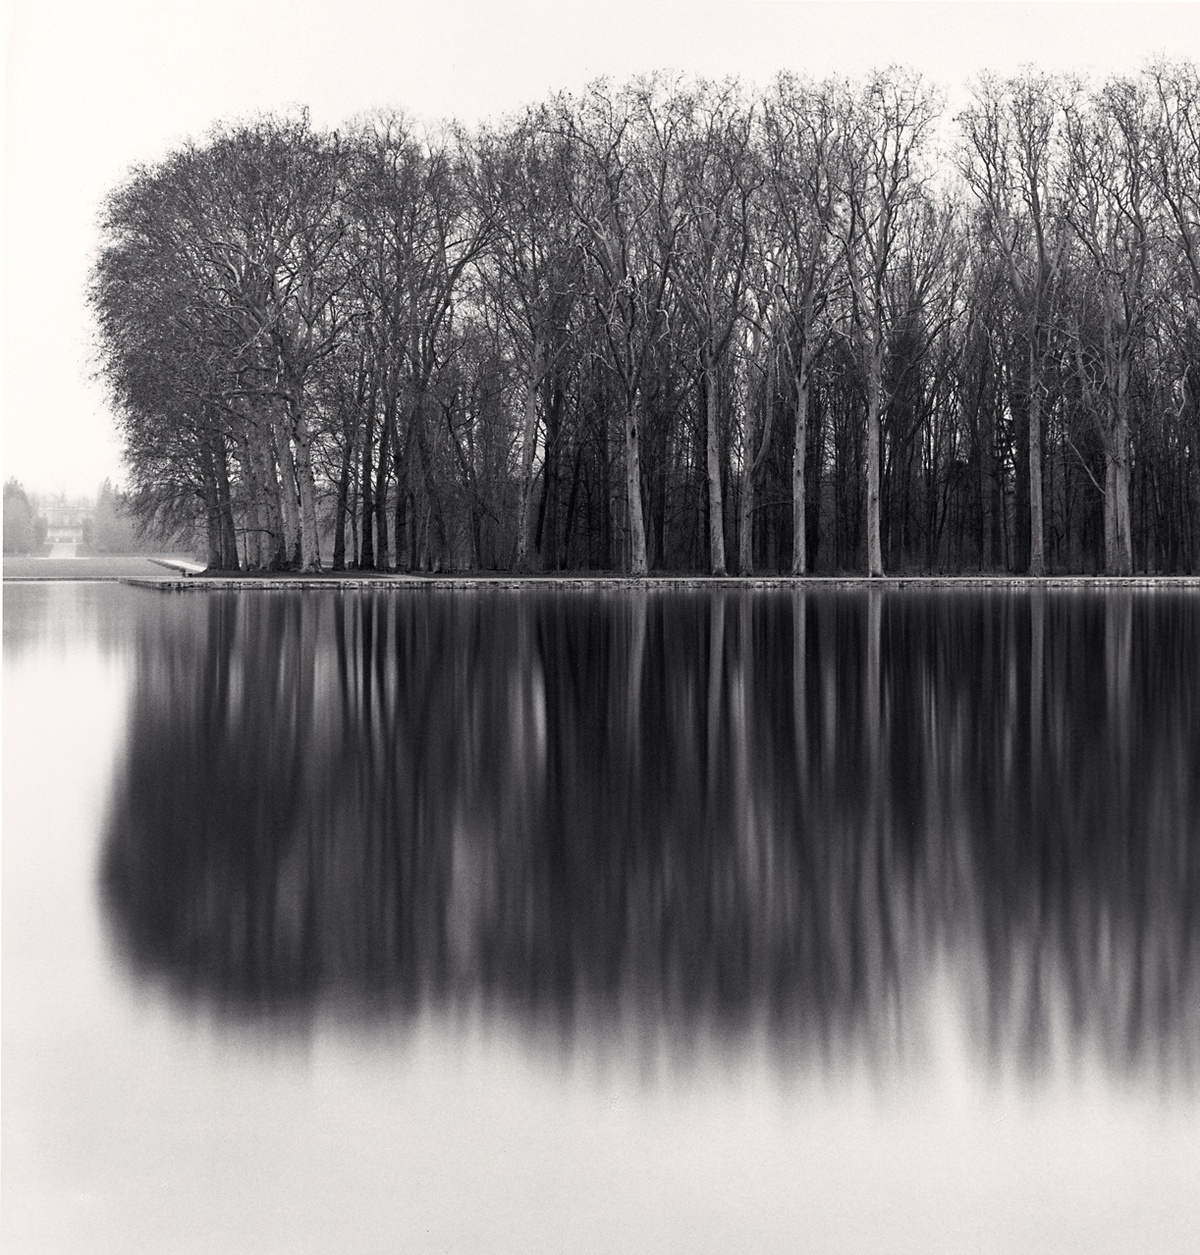 Michael Kenna Octagonal Basin, Sceaux, France 1996 Sepia Toned Silver Gelatin Print From An Edition Of 45 8 x 8 Inches